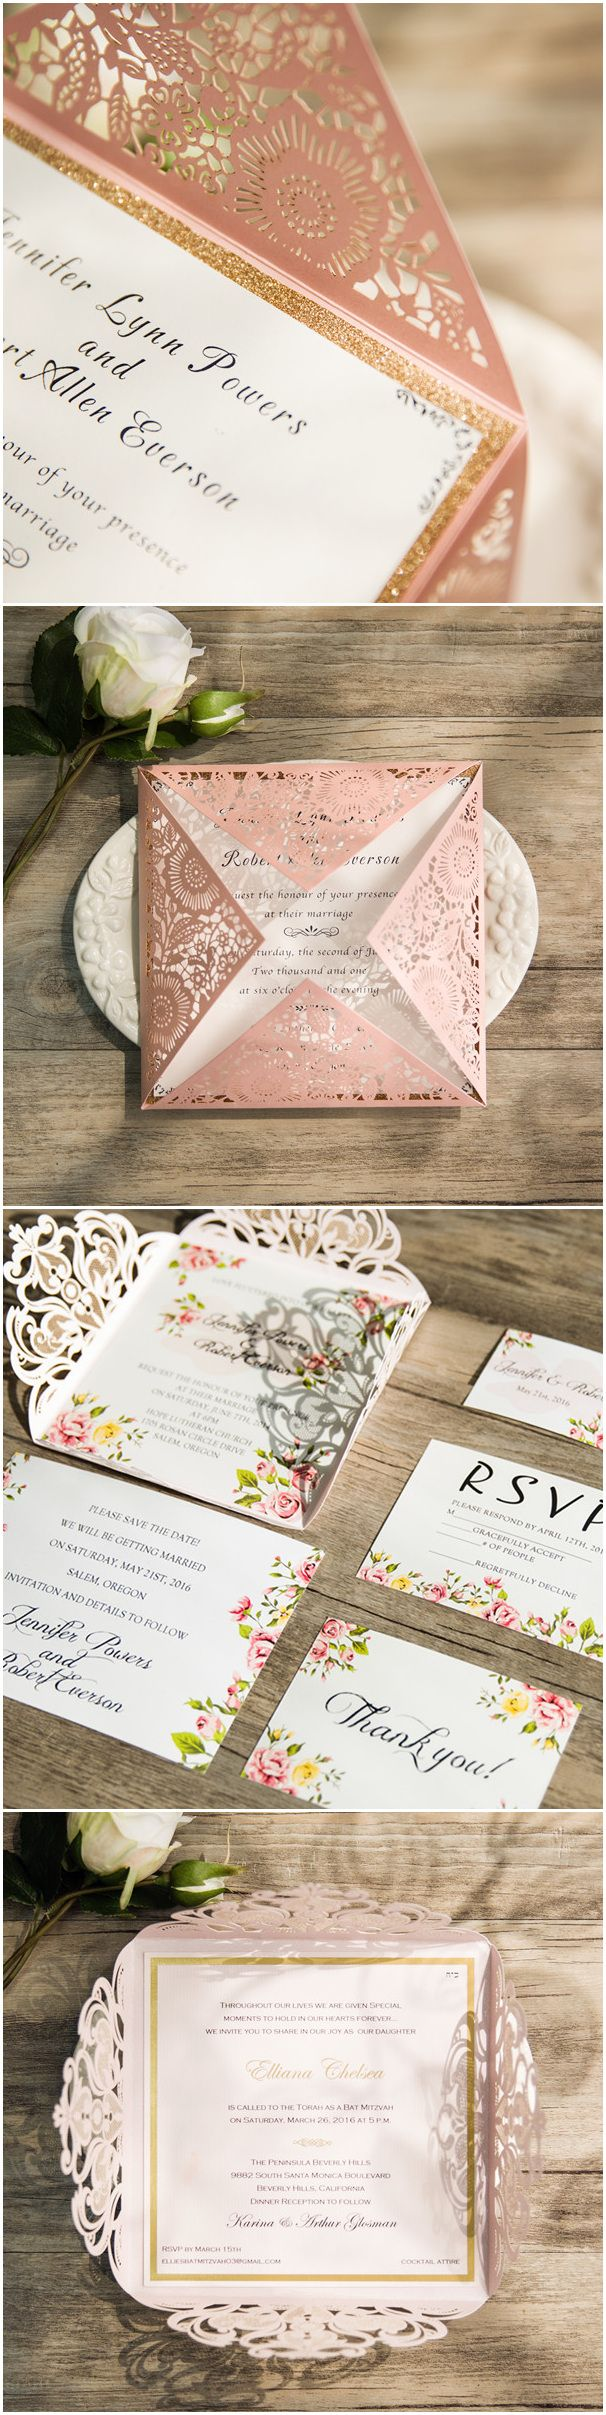 second wedding invitations wording%0A shades of pink wedding invitations  laser cut wedding invitations